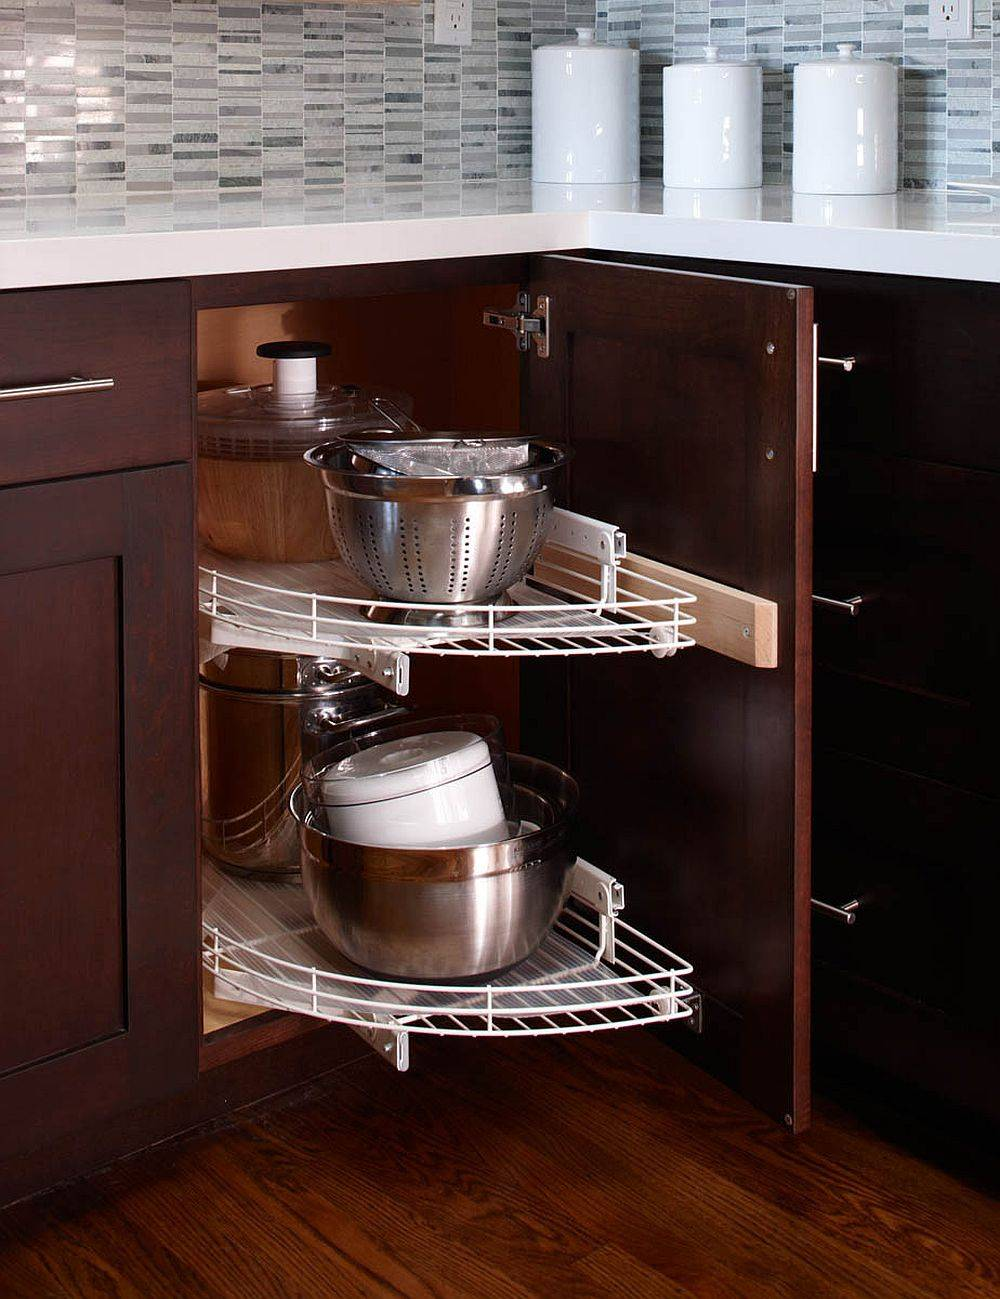 Explore-the-many-different-typs-of-Lazy-Susan-cabinets-before-you-settle-on-one-28013